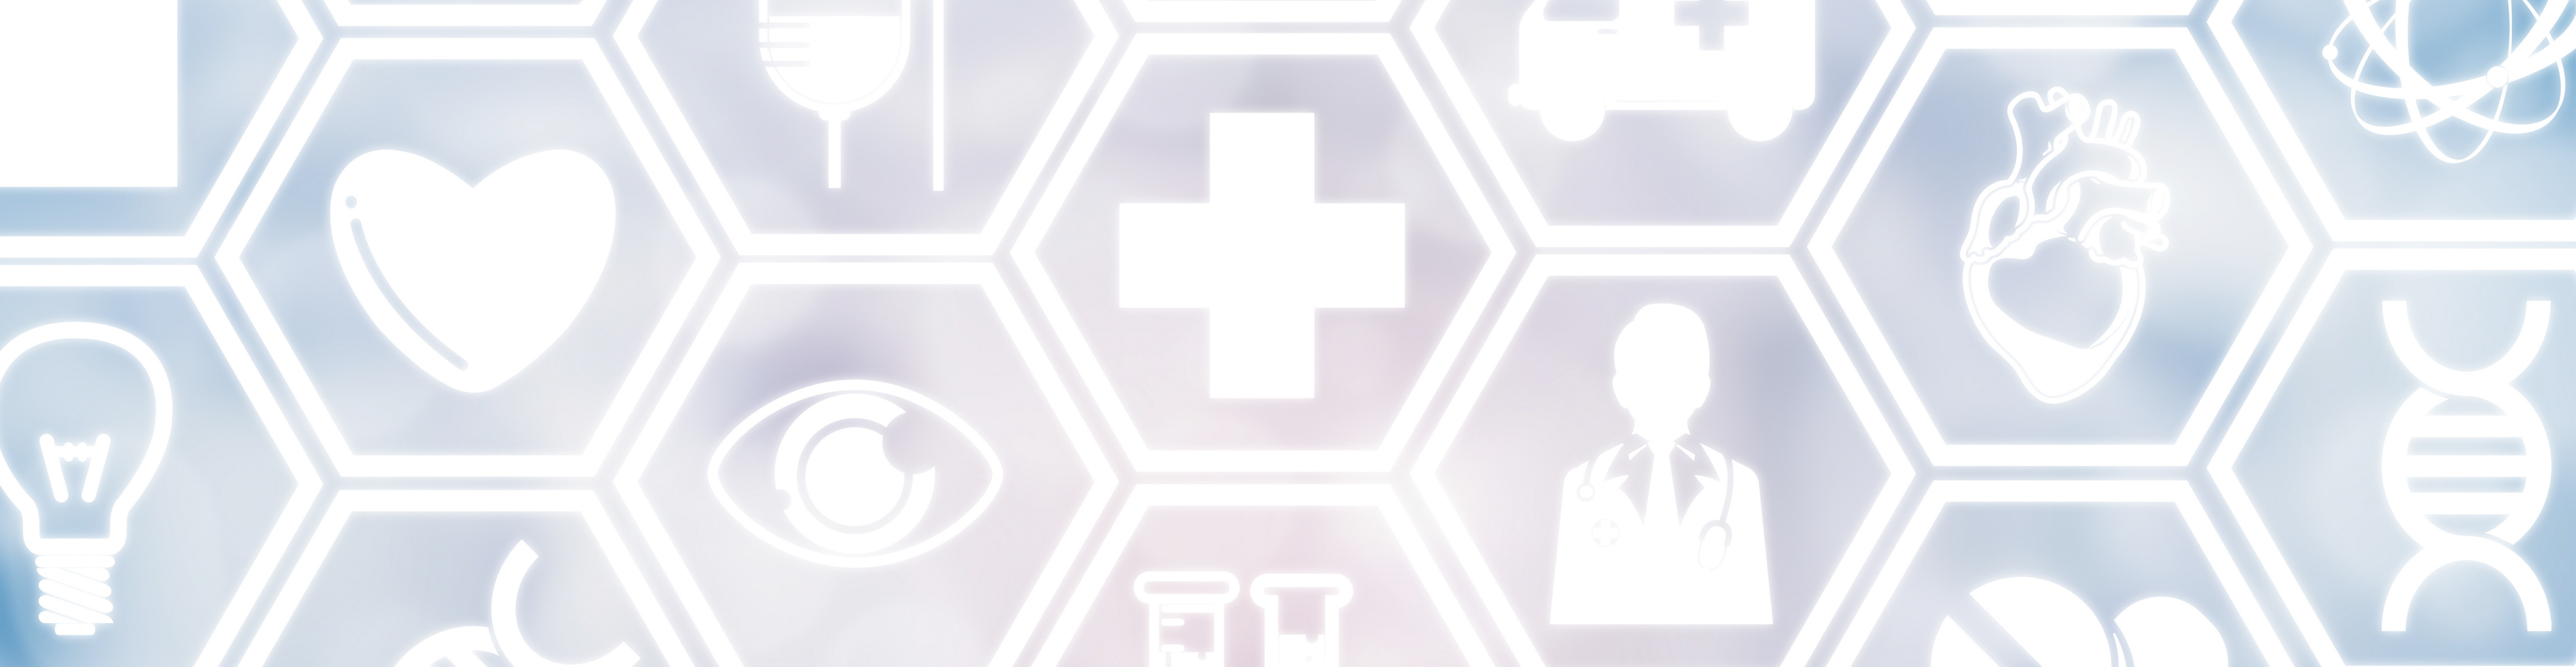 Healthcare Solutions Header